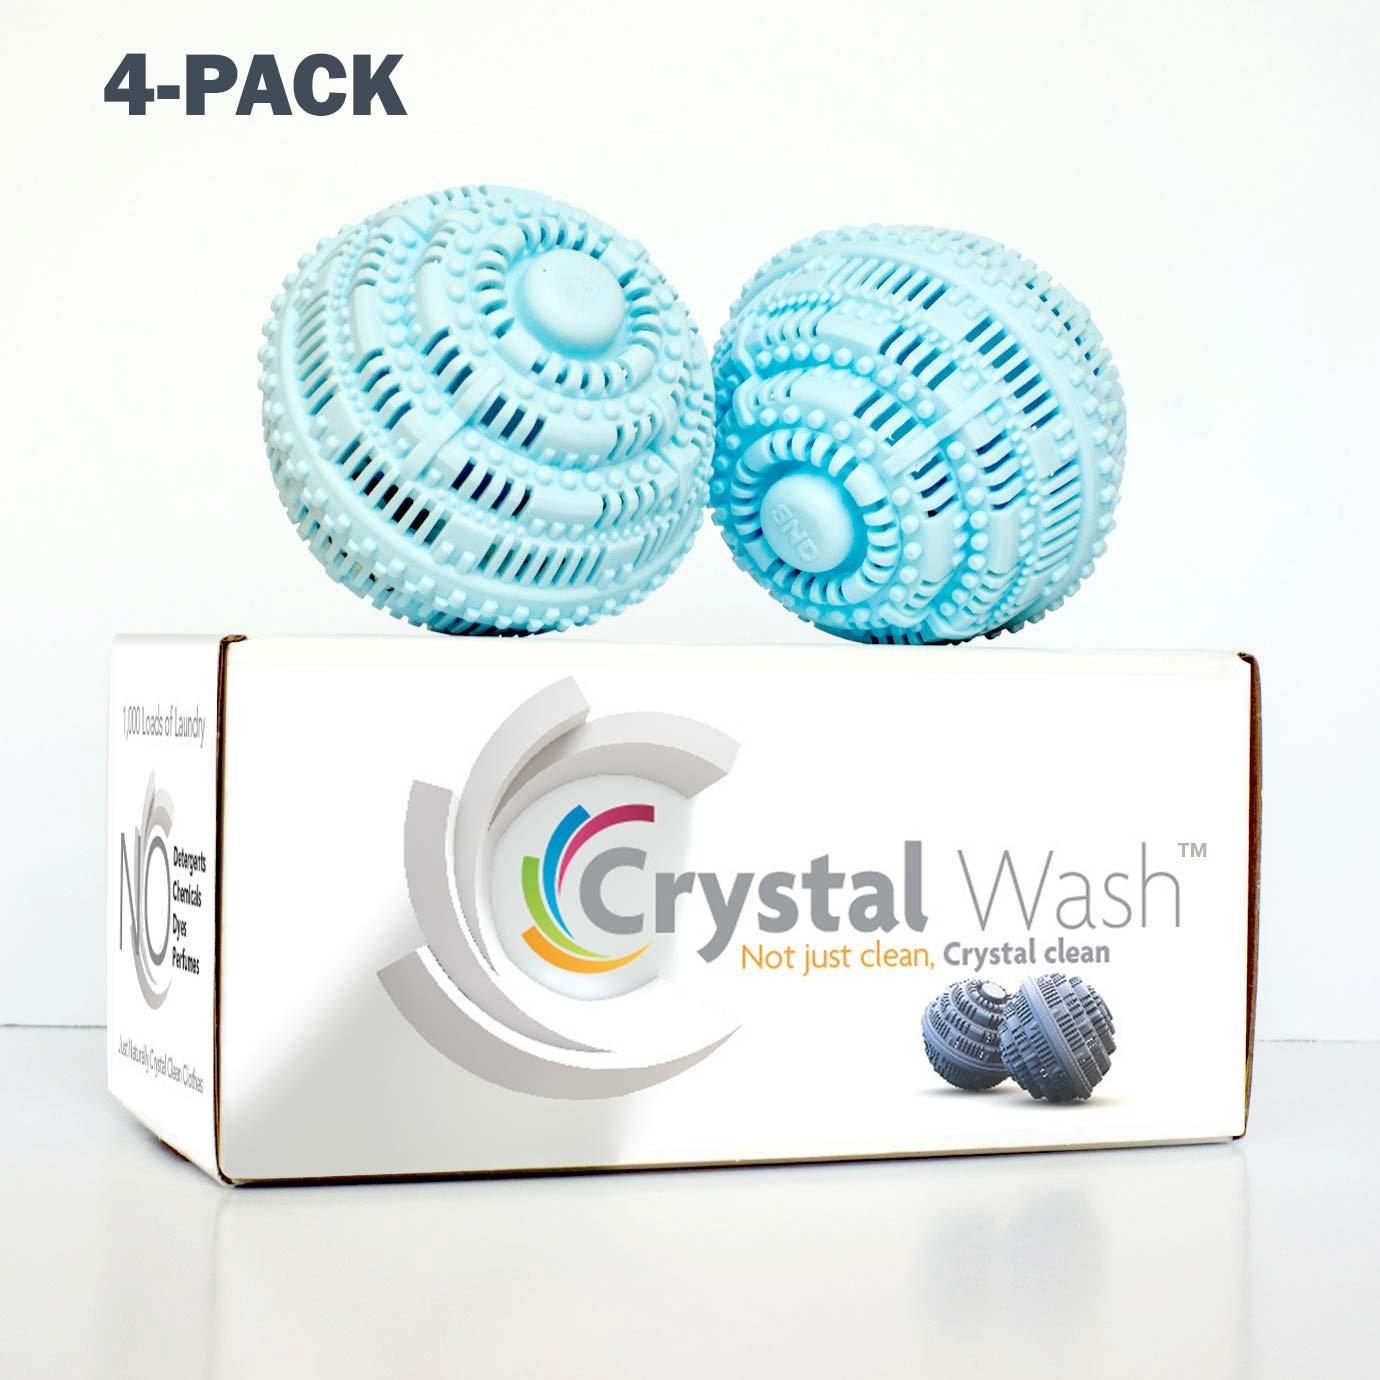 Crystal Wash - Wash Balls - Laundry Detergent Alternative - All Natural (4 pack - $199.99 = $40 Savings)